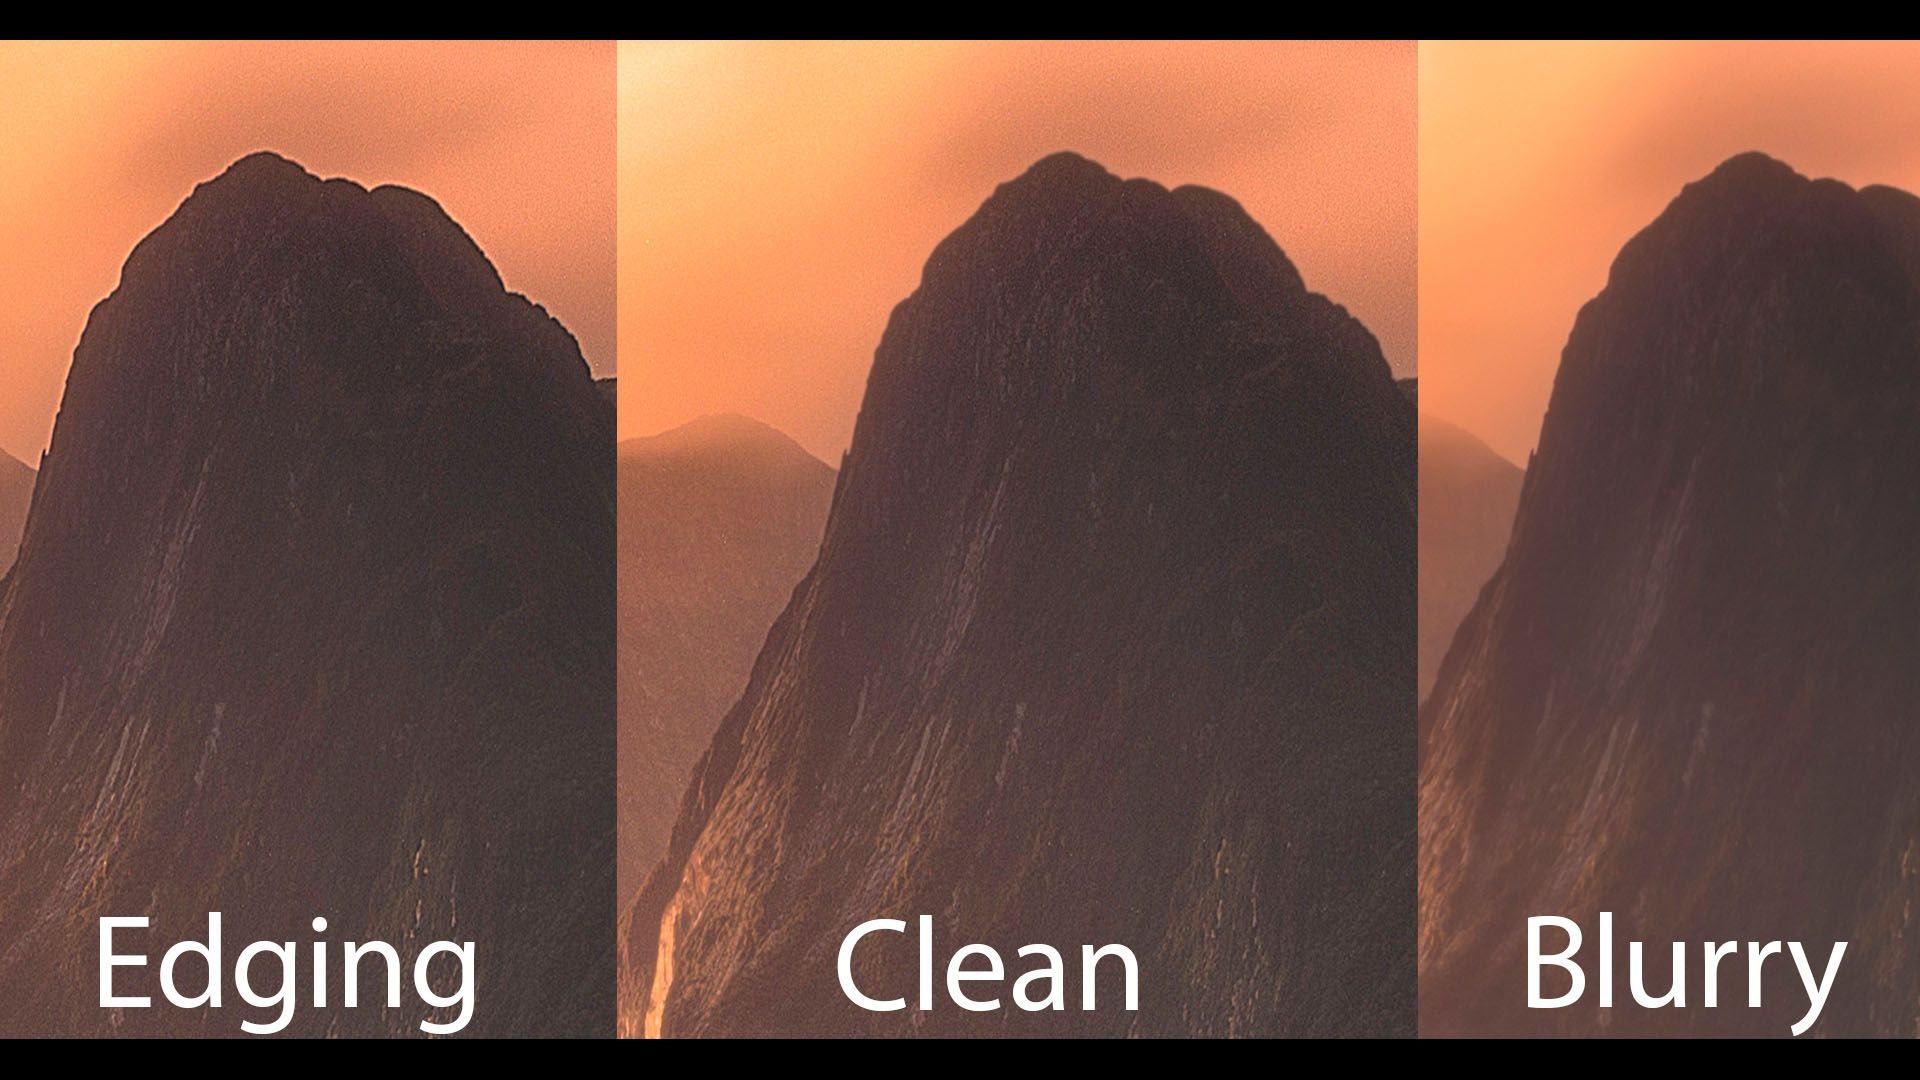 How To Sharpen Cleanly in Photoshop Without White or Black Edging